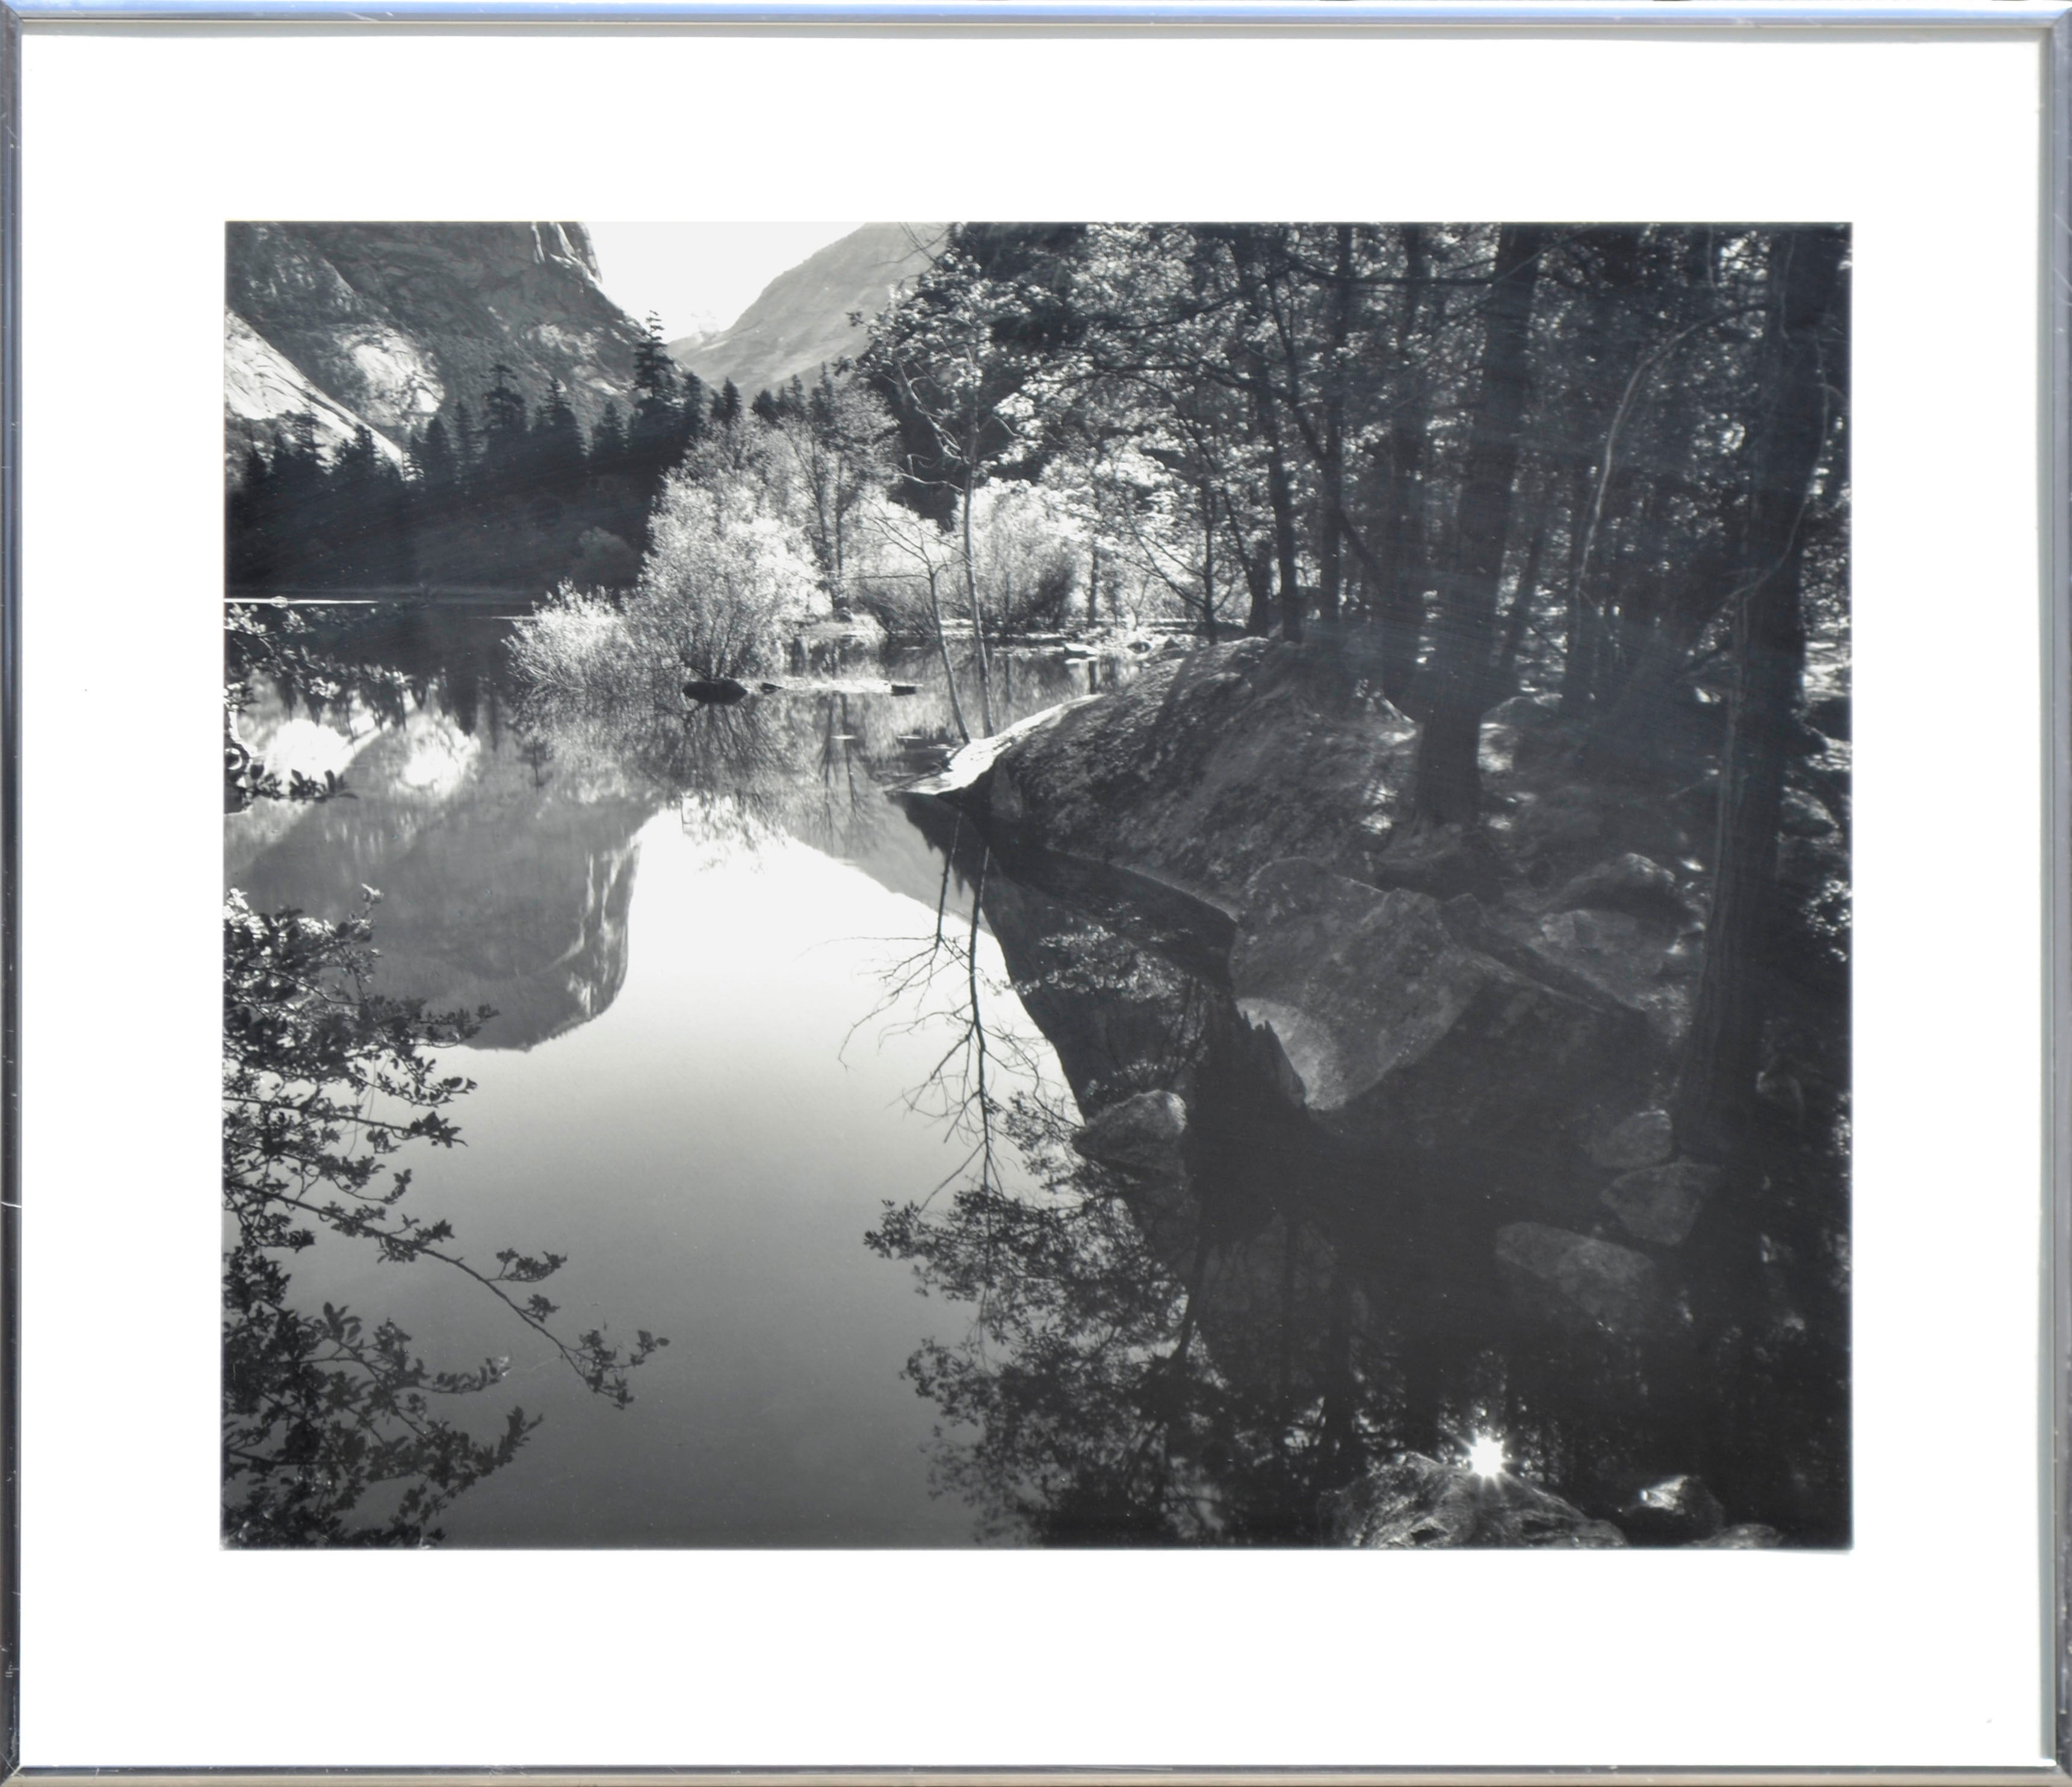 Robert werling black and white reflections